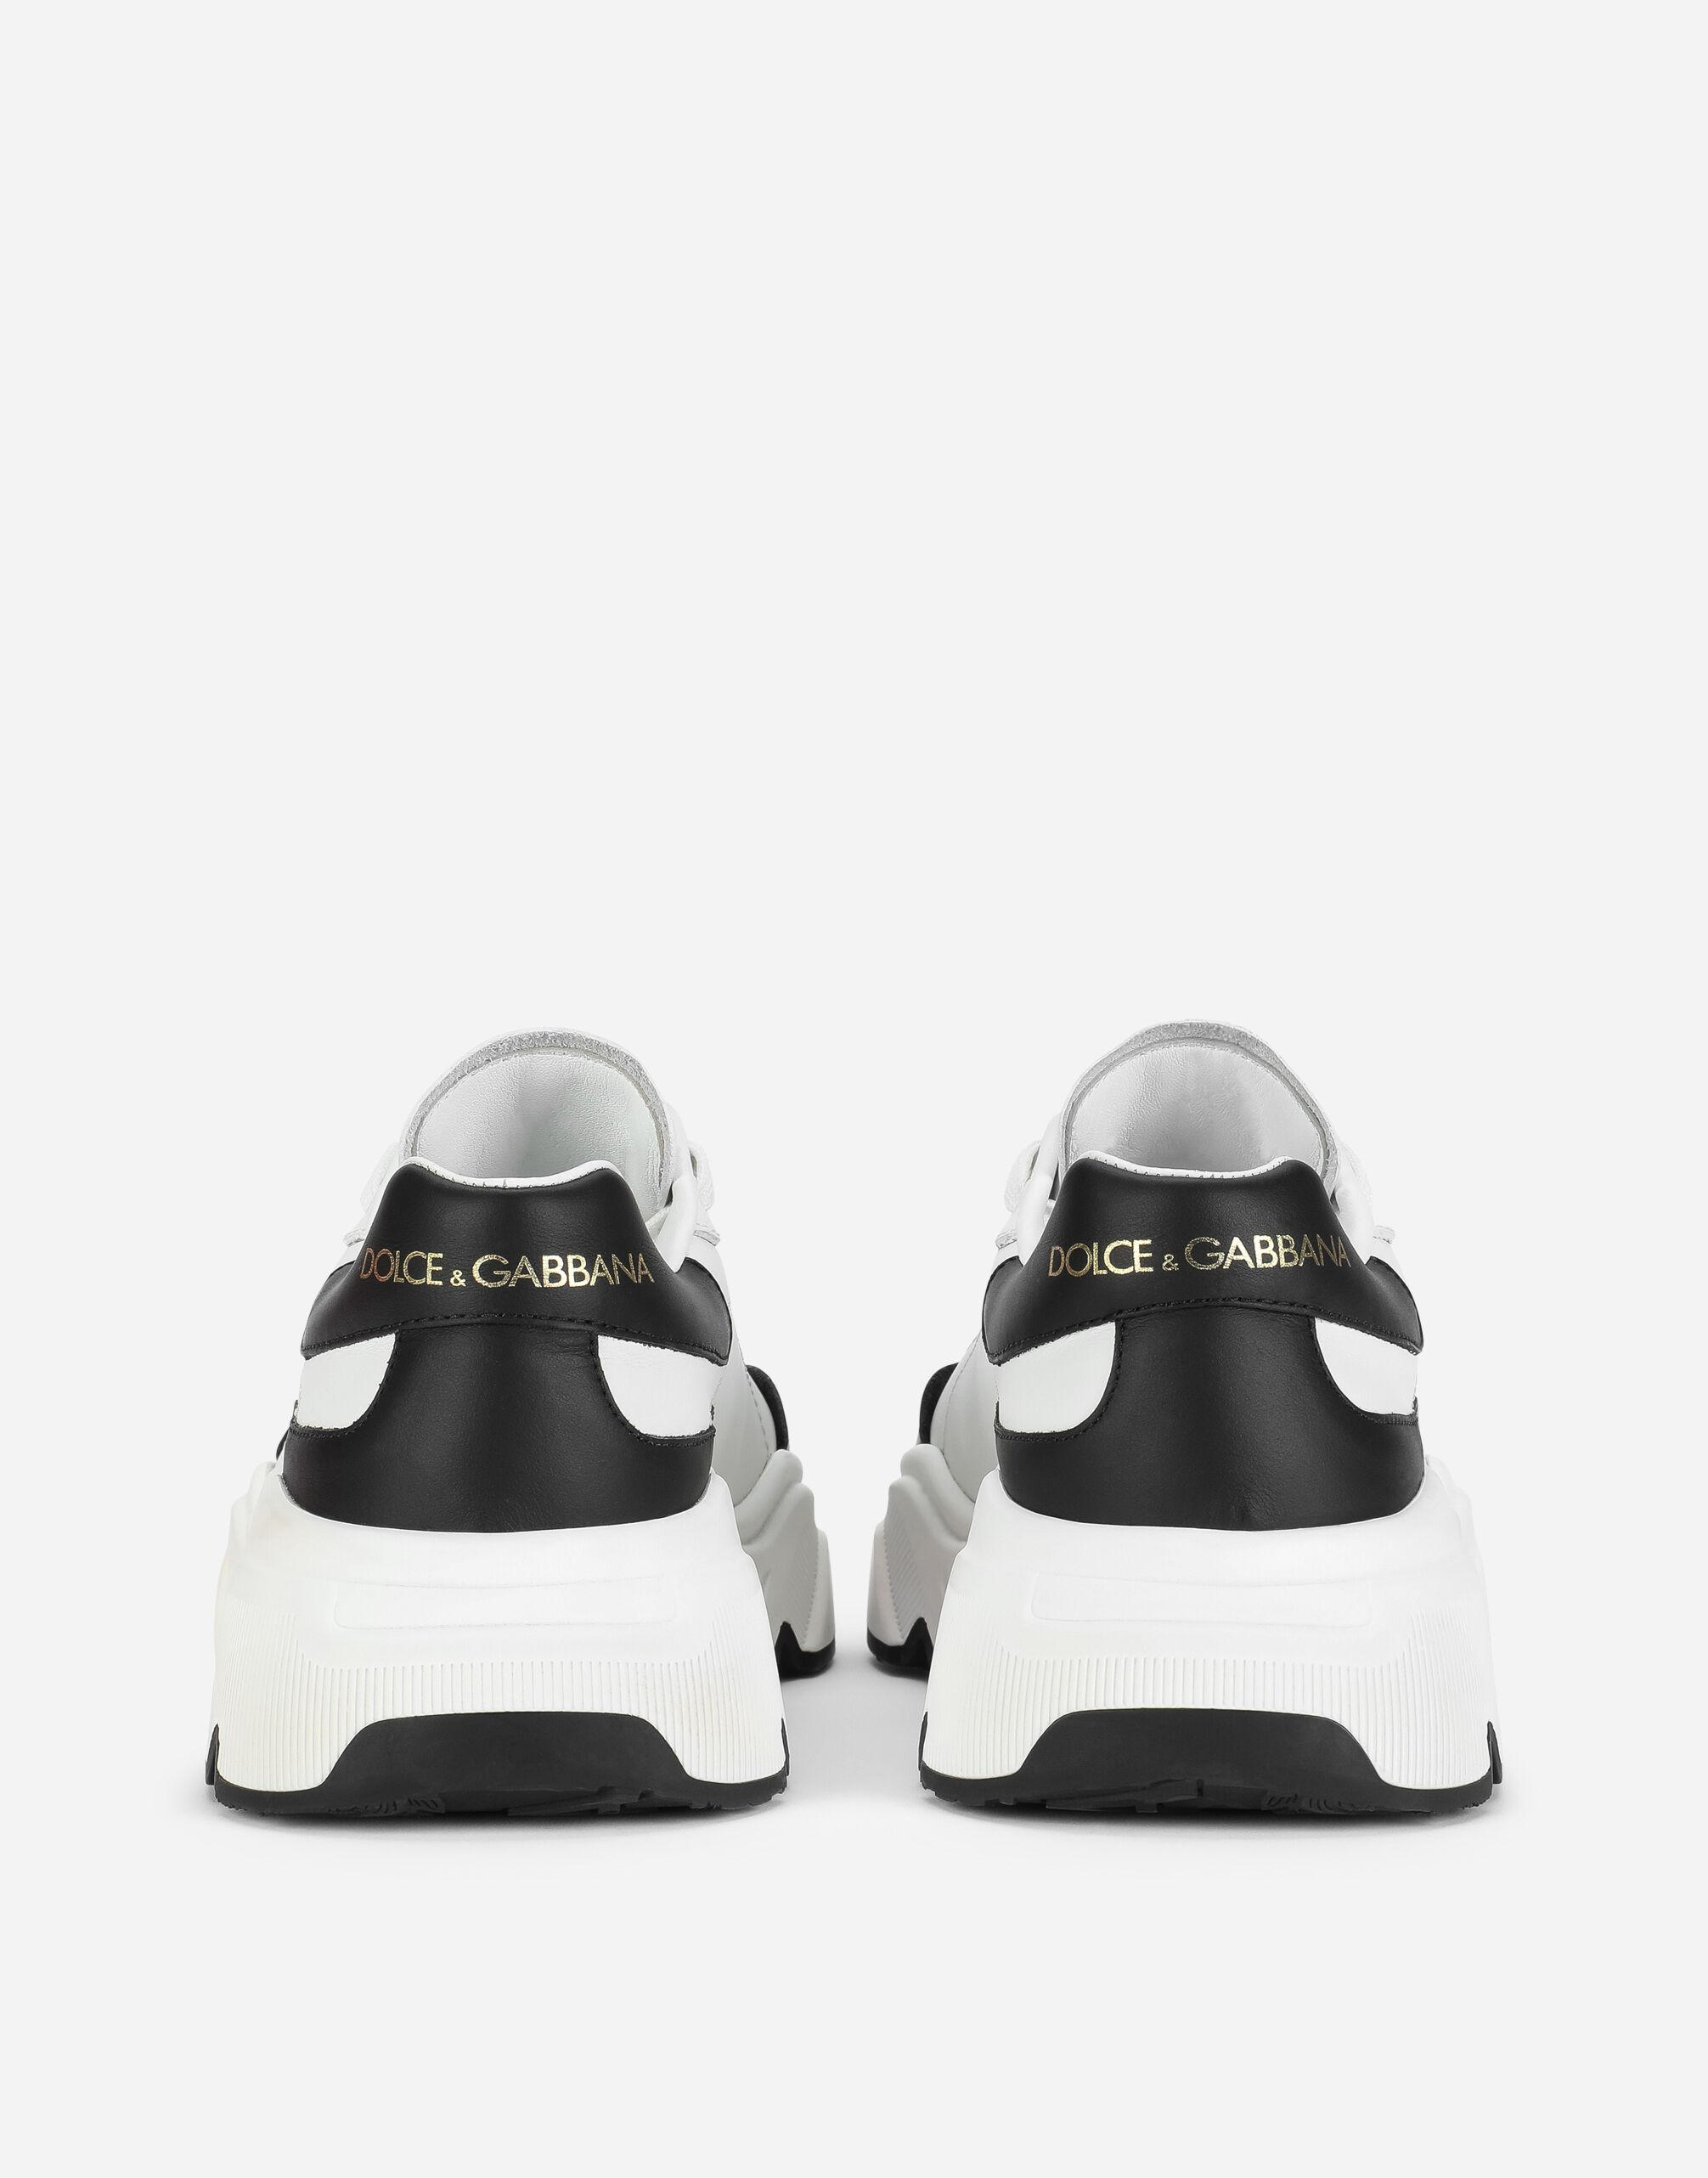 Nappa leather Daymaster sneakers 2